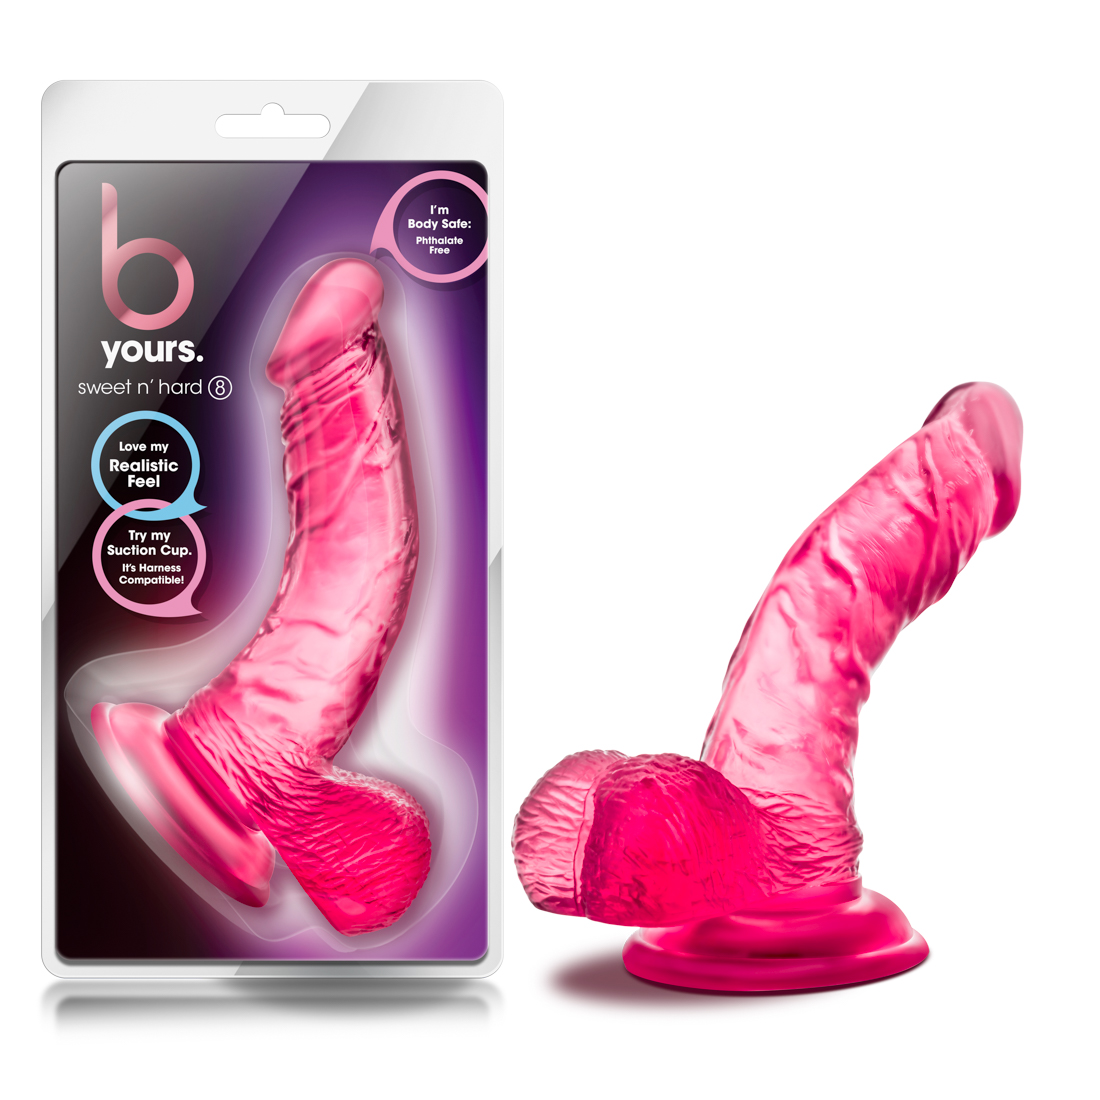 B Yours - Sweet n' Hard 8 - Pink